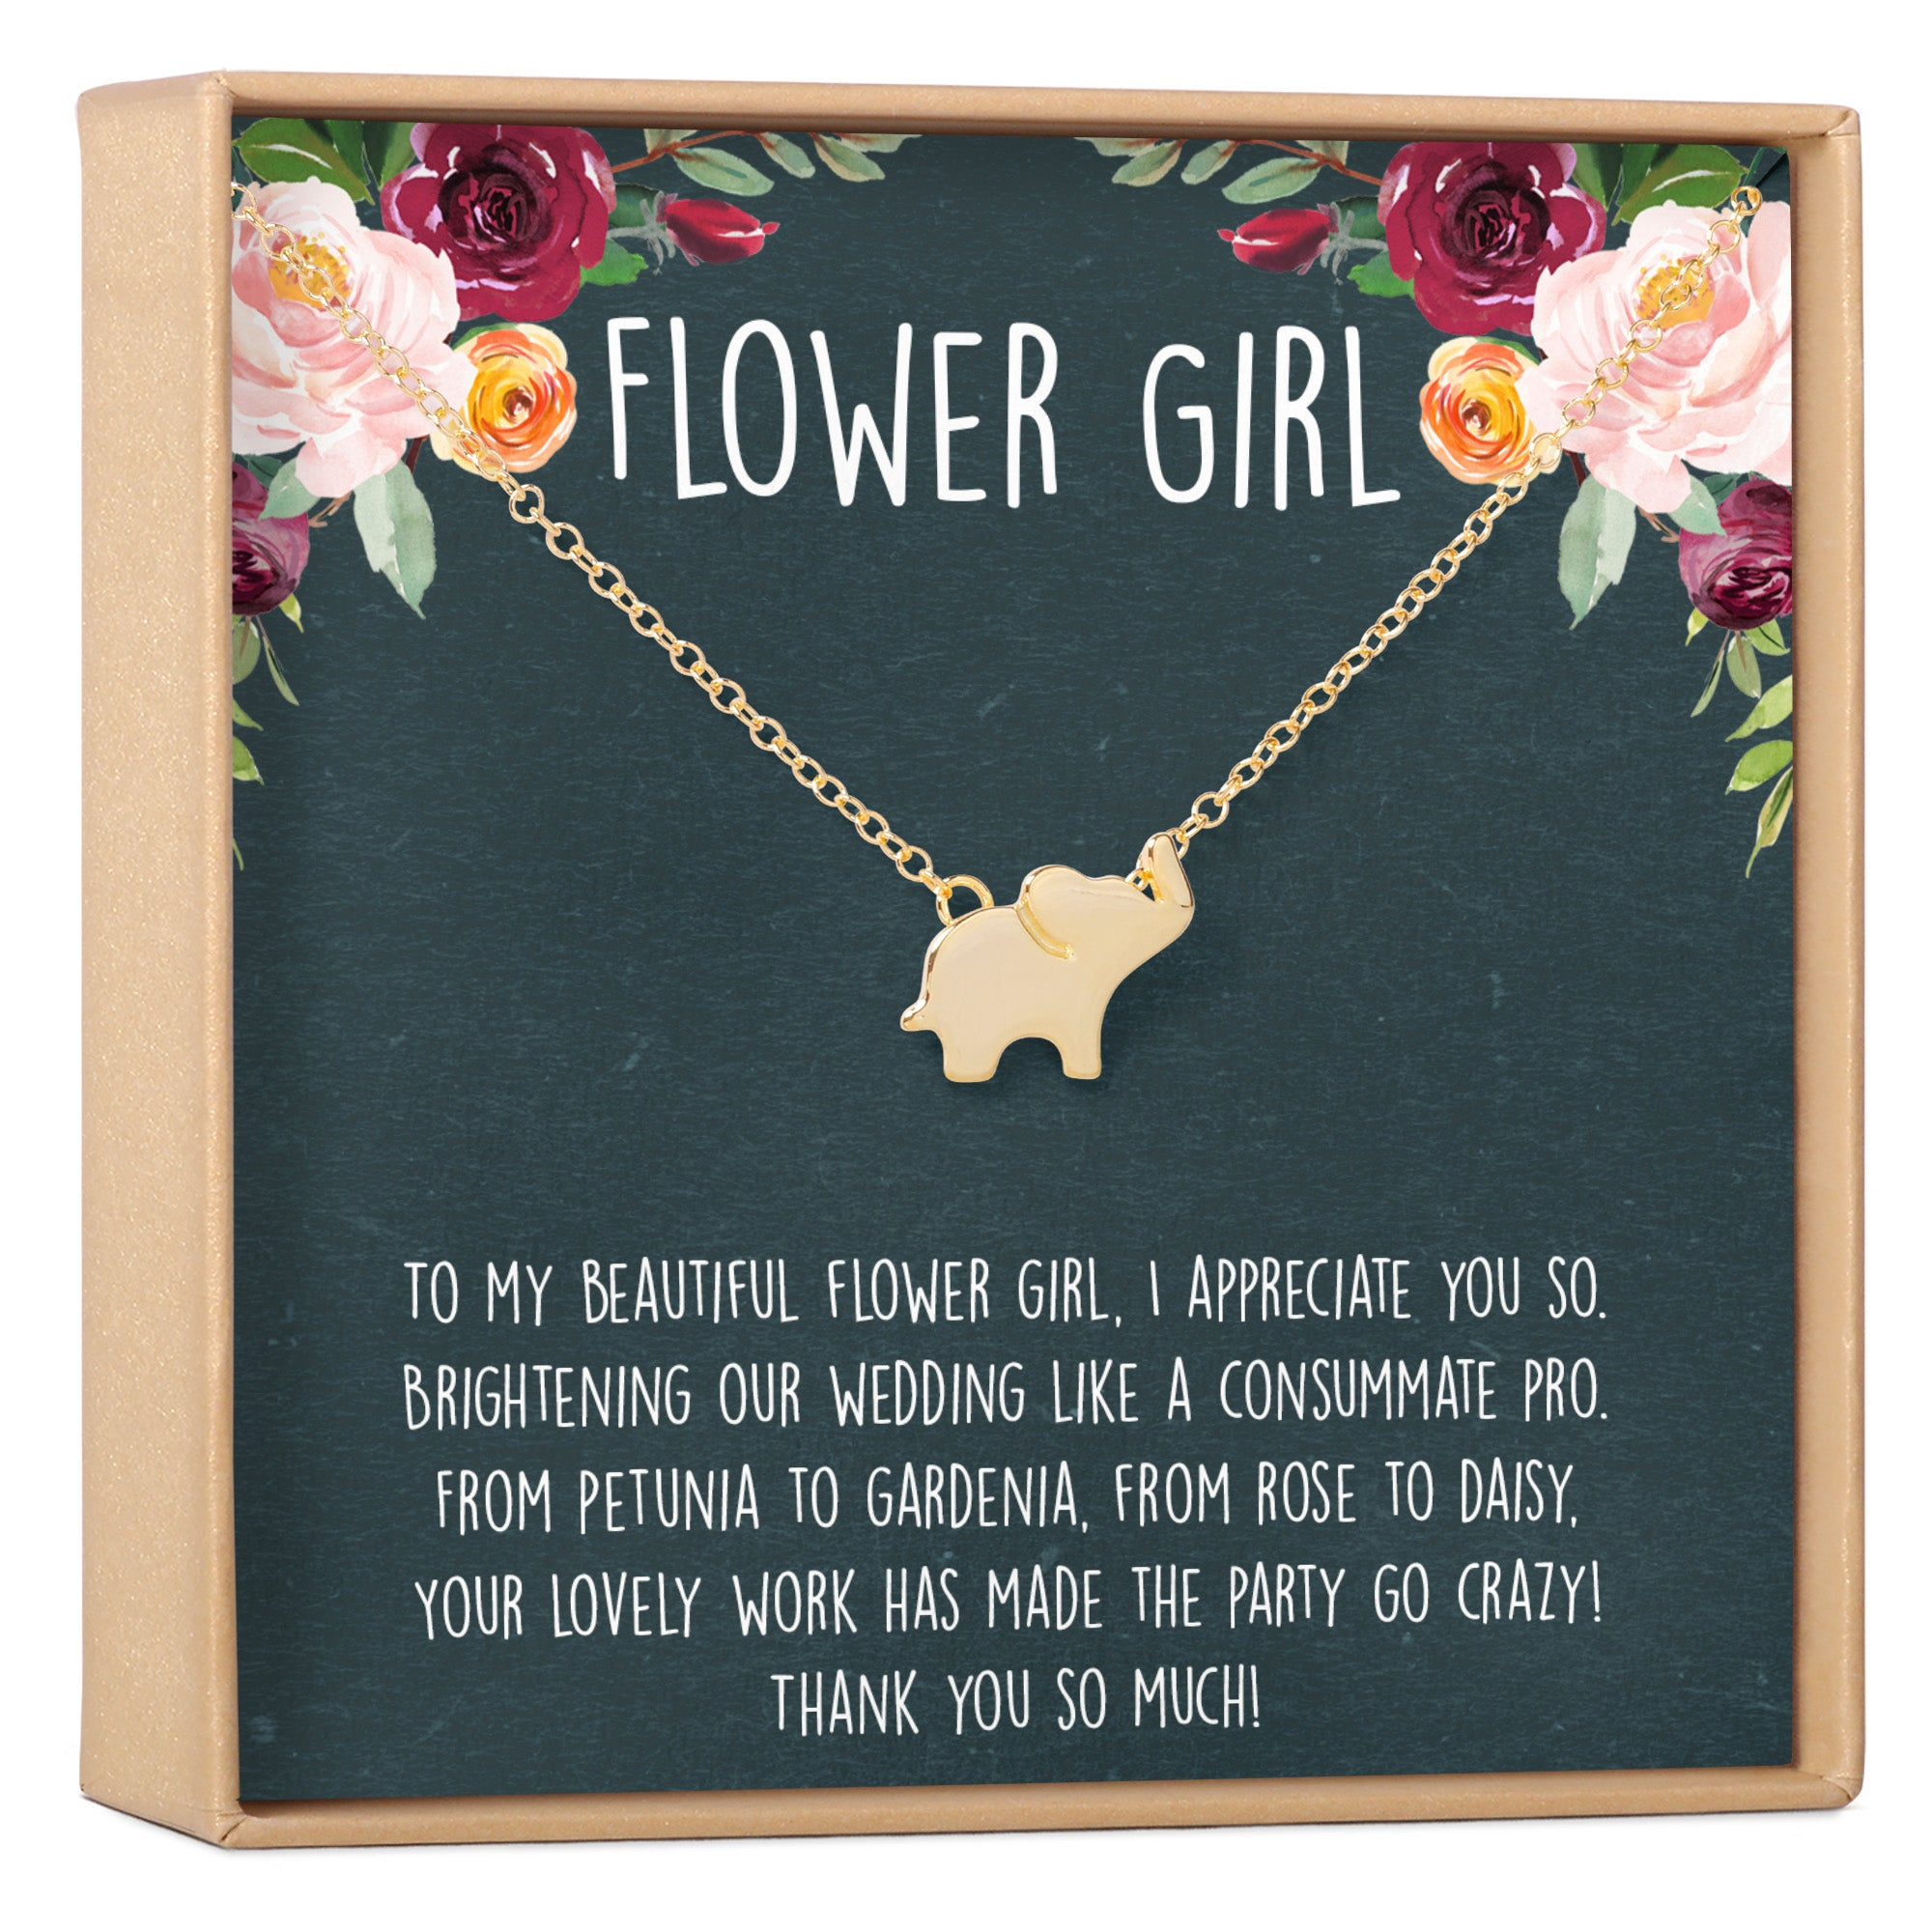 Bridal Jewelry Bridesmaids Gifts 602 Wedding Flower Girl Trio Orchid Flower Necklace